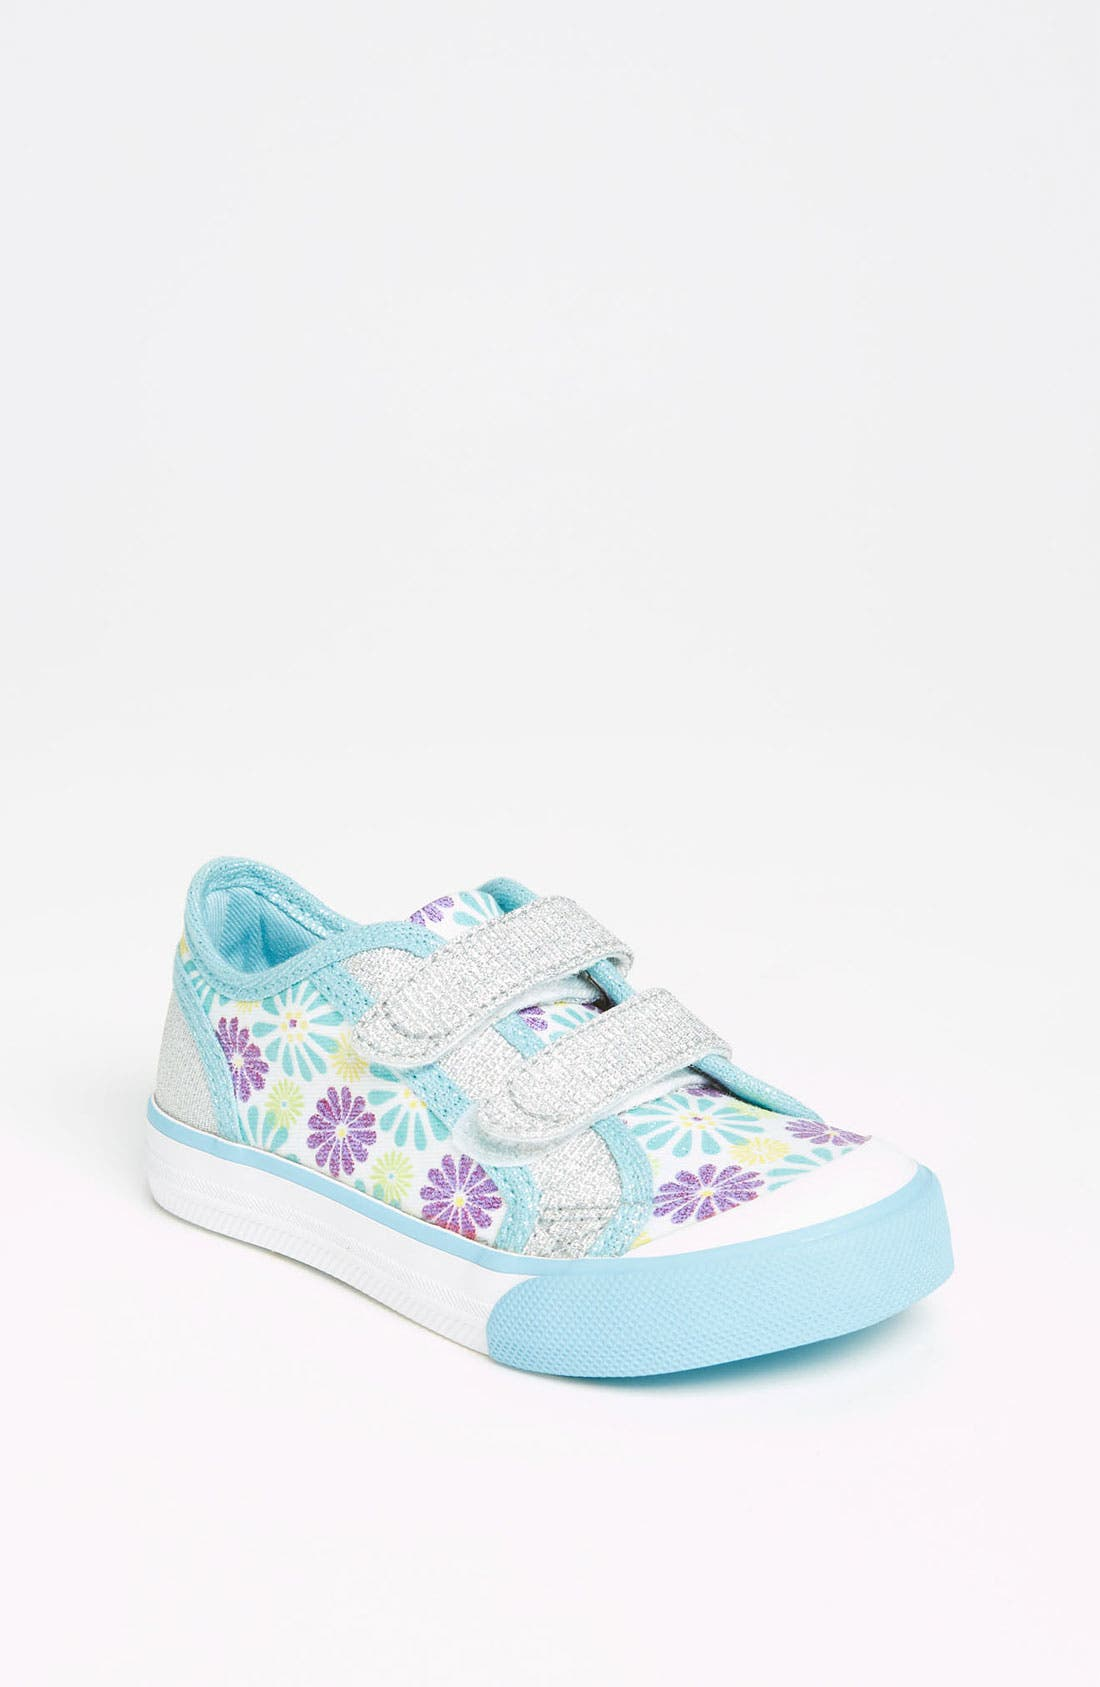 Alternate Image 1 Selected - Keds® 'Glamerly' Sneaker (Walker & Toddler)